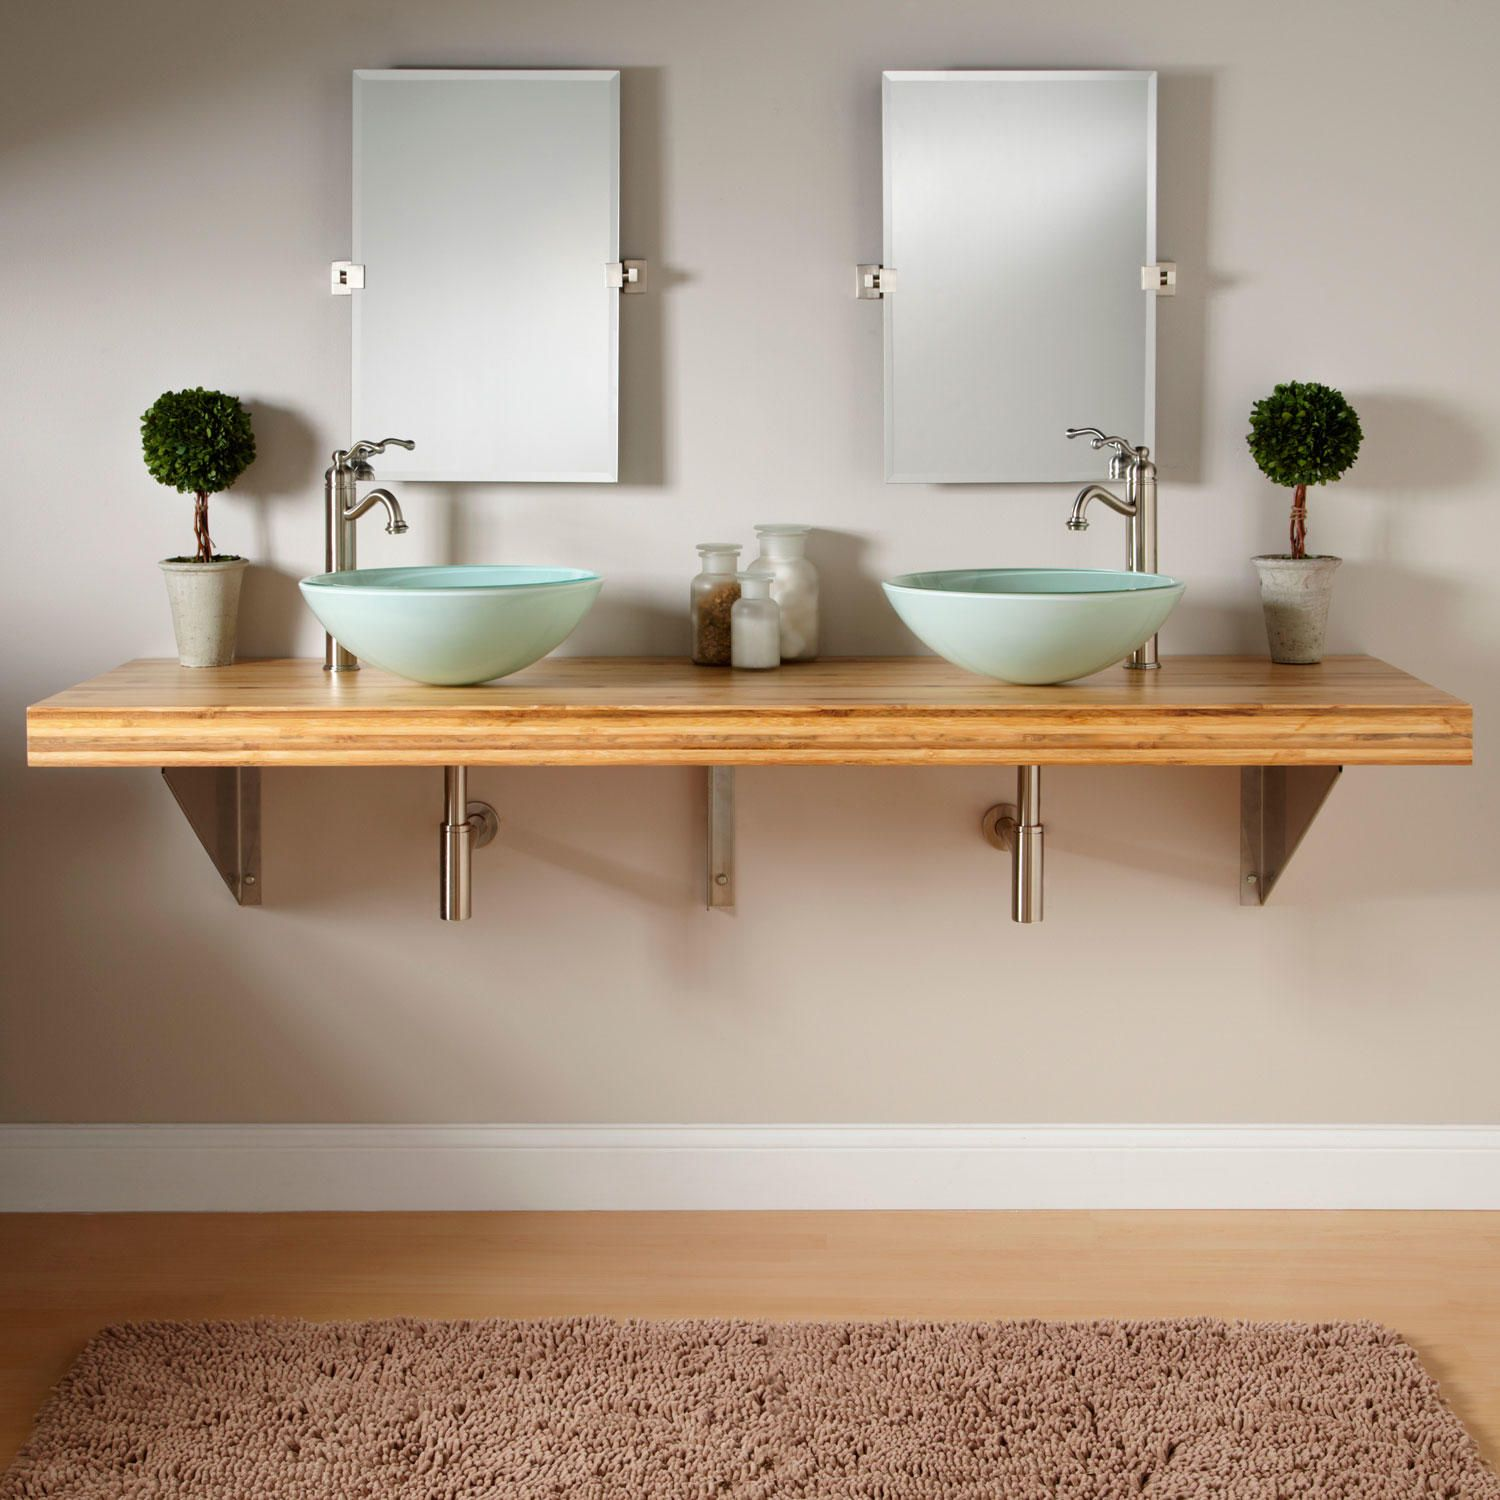 Bathroom Furniture Fixtures and Decor 73 Bamboo